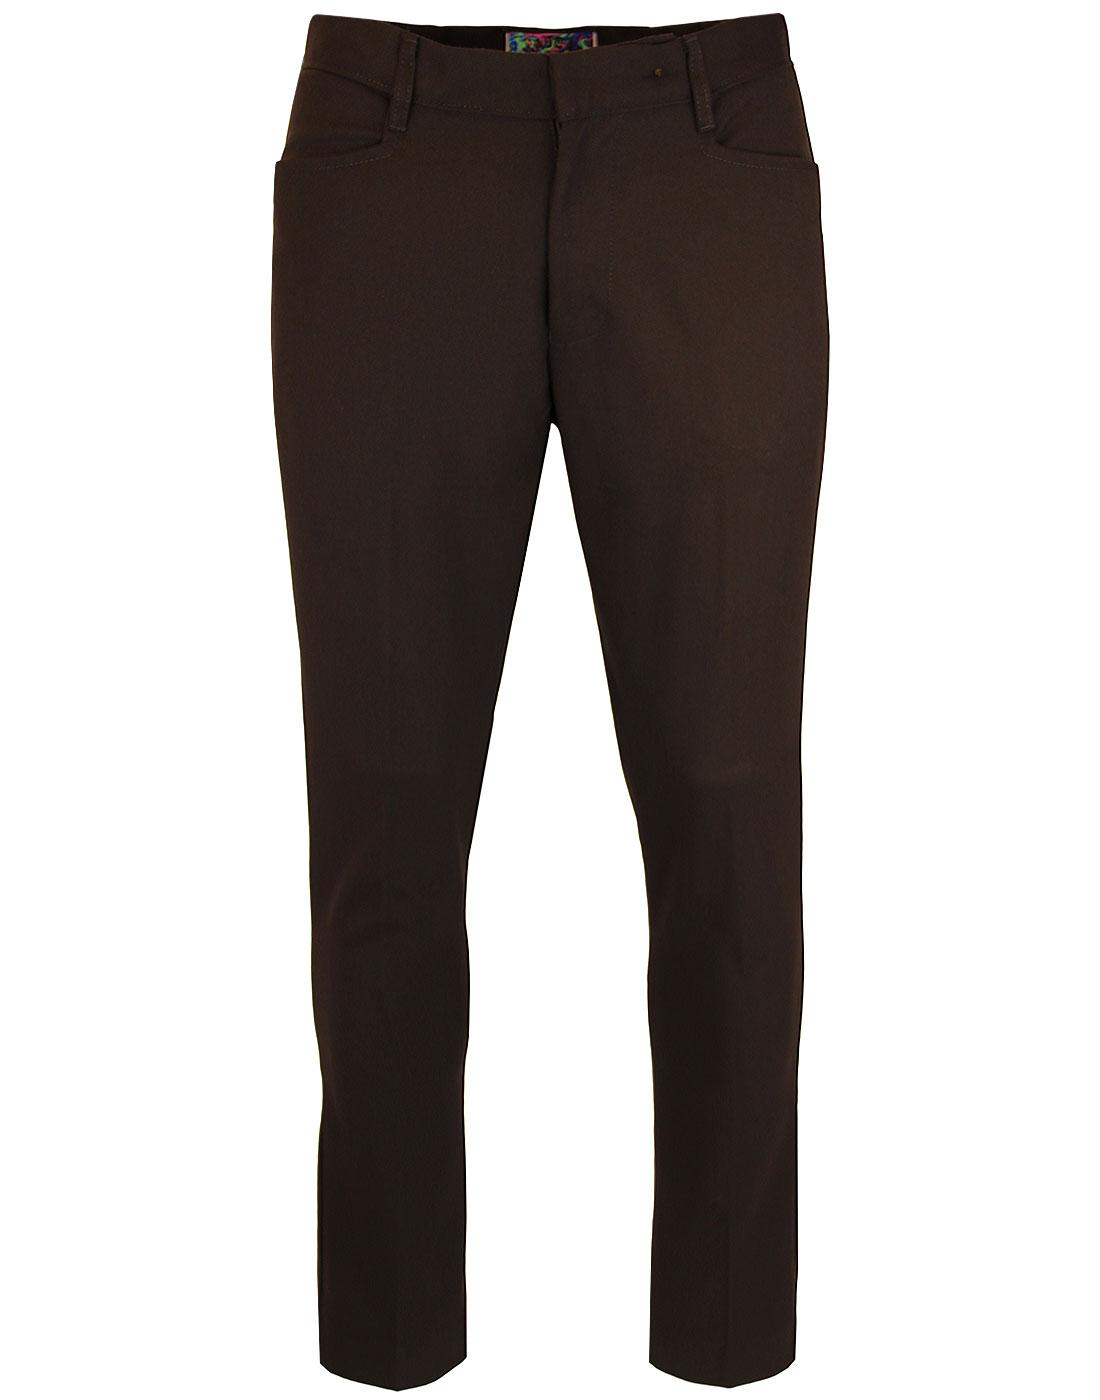 madcap england logan slim hopsack trousers brown